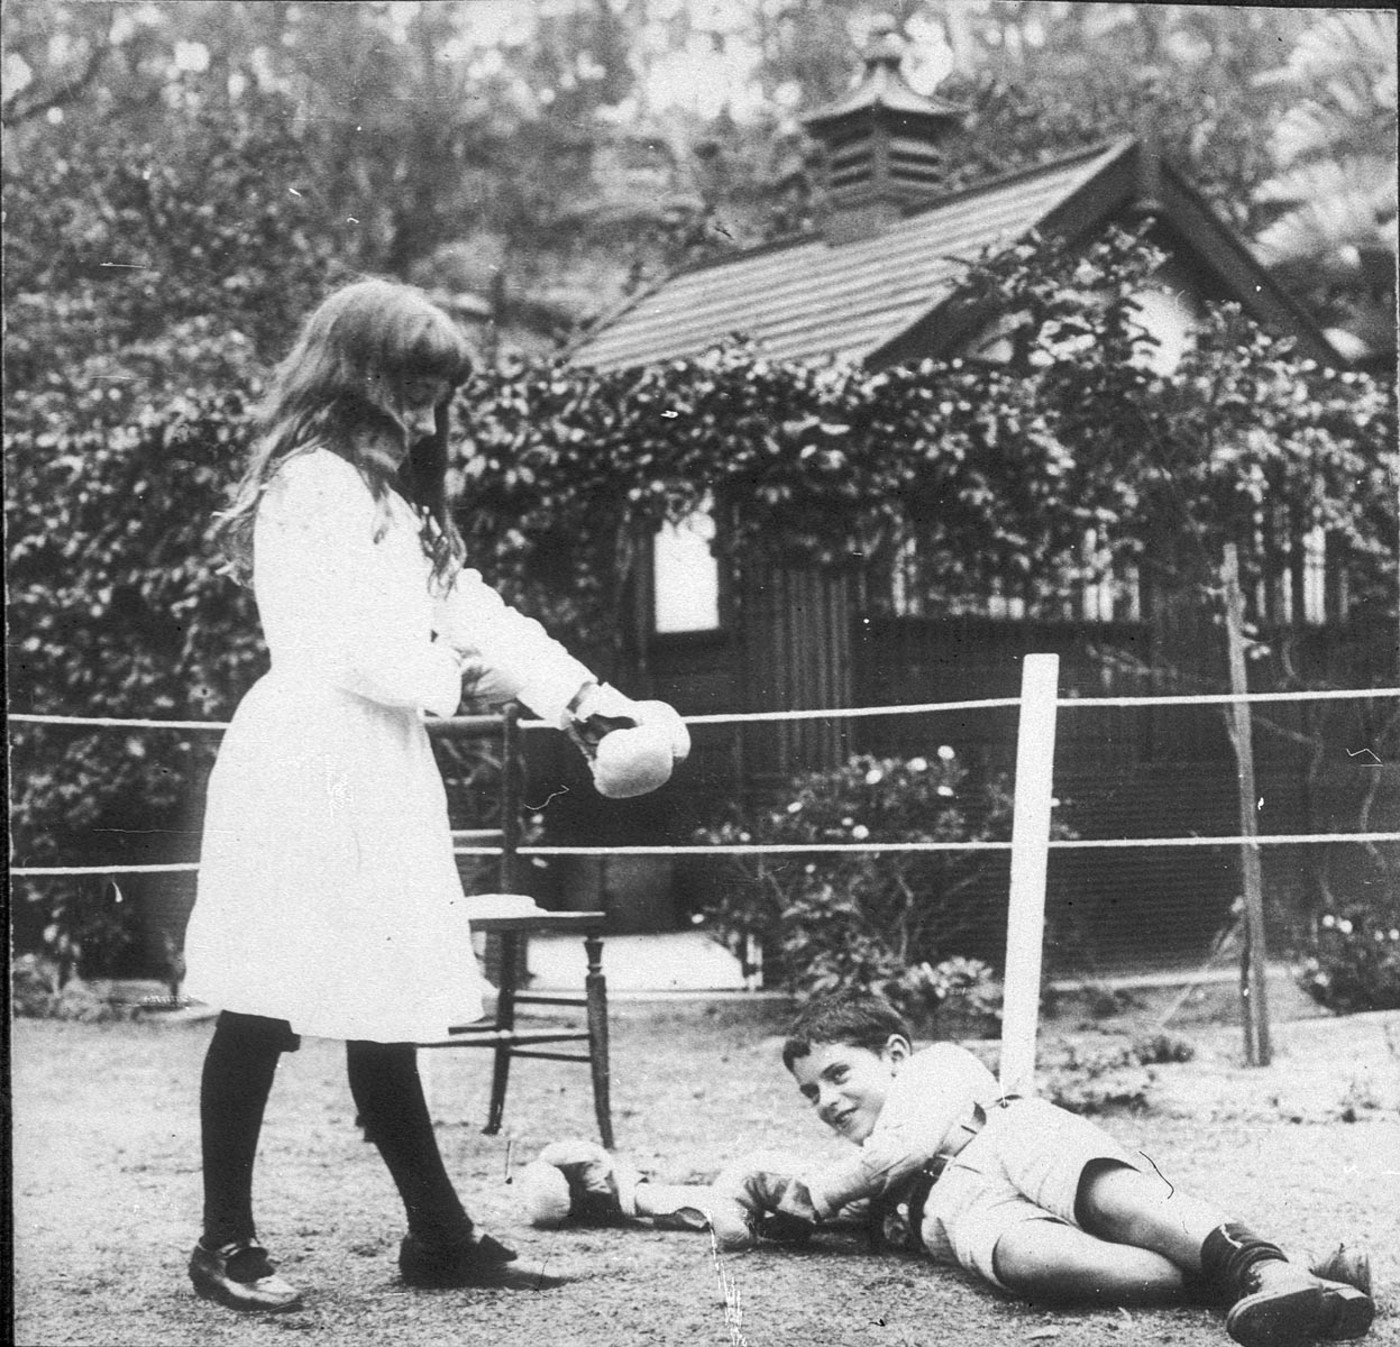 Banjo Paterson's children Grace and Hugh boxing with Christmas present gloves, Sydney, NSW, 1919 / photographer unknown